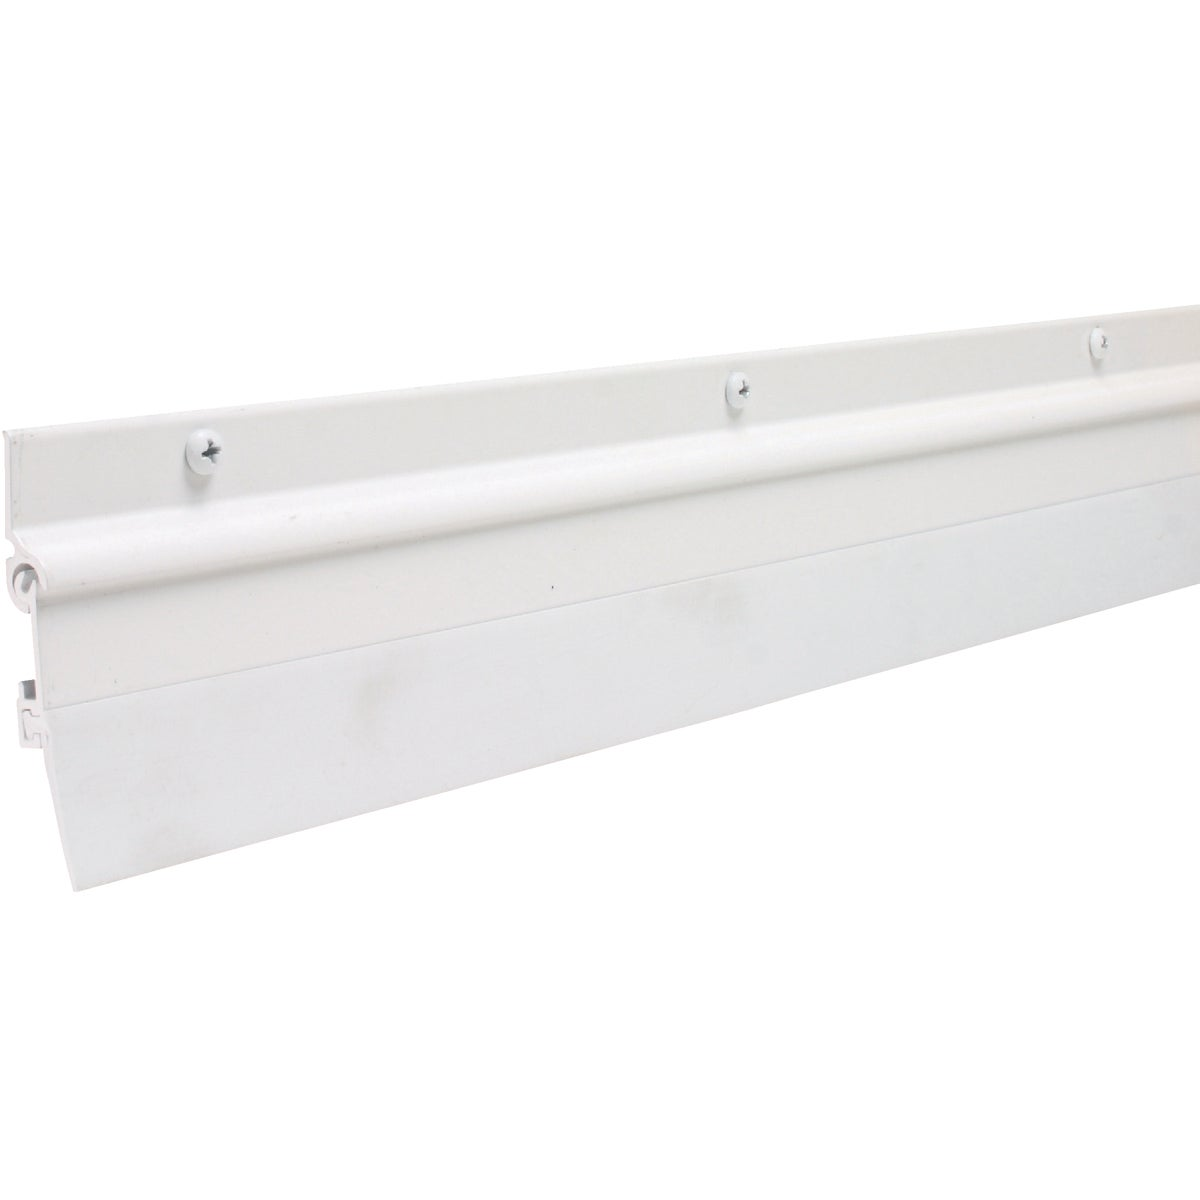 WHT FLEX-O-M DOOR SWEEP - 07179 by M D Building Prod